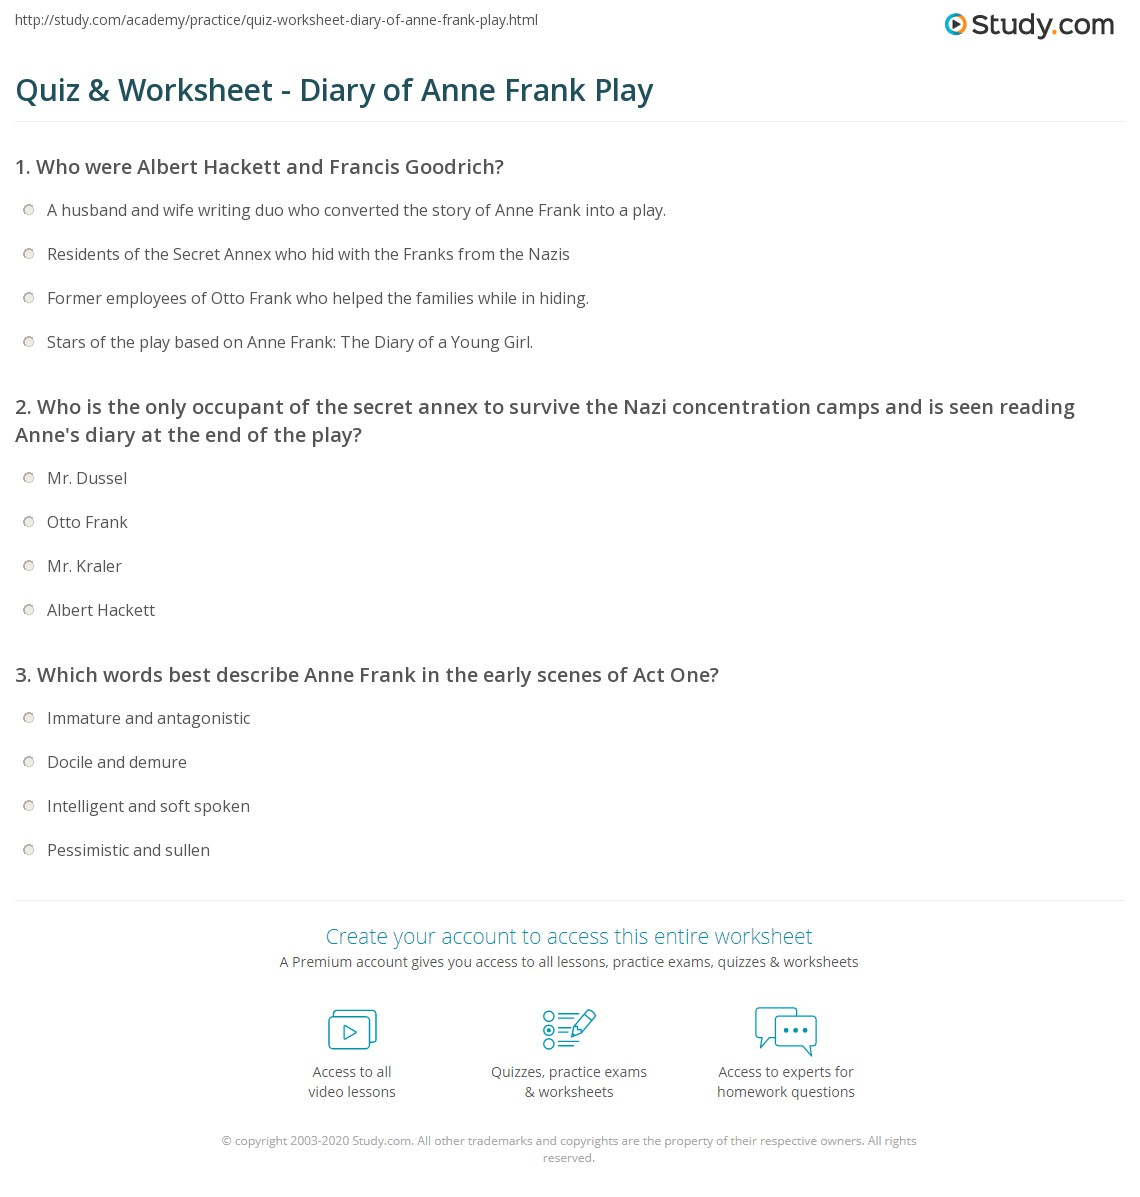 Worksheets Anne Frank Worksheets quiz worksheet diary of anne frank play study com print by albert hackett frances goodrich summary characters worksheet